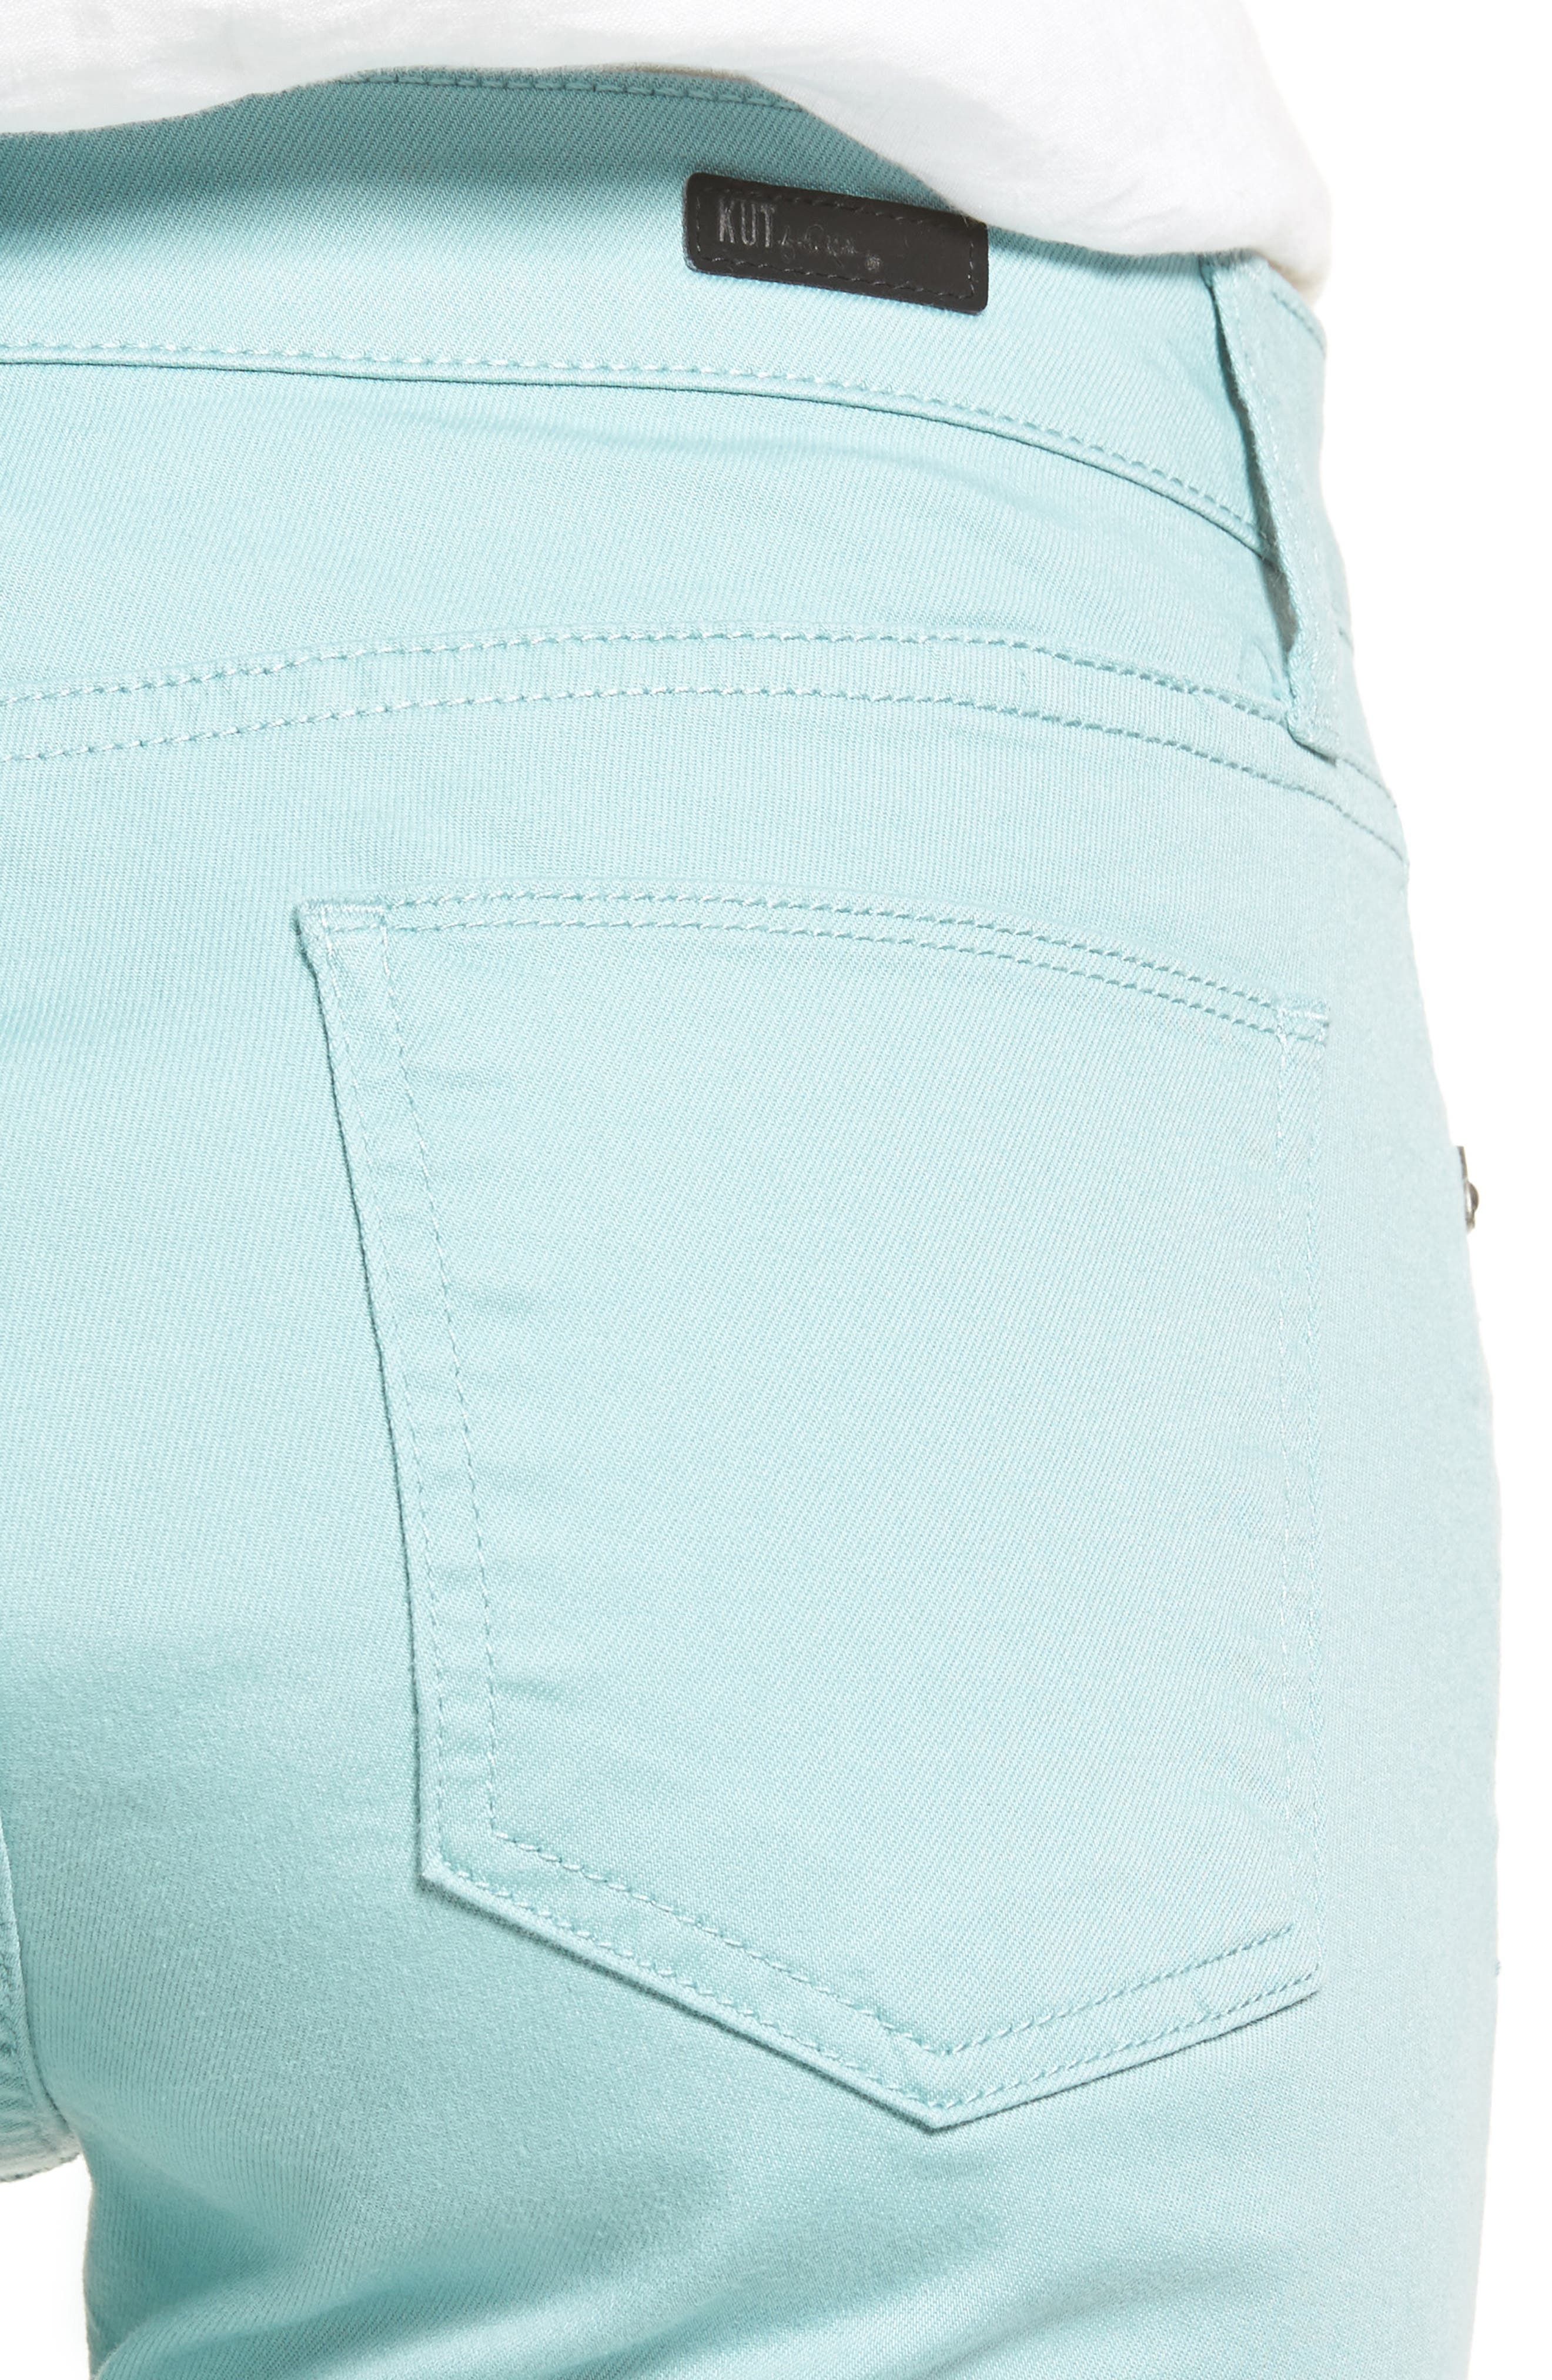 Alternate Image 4  - KUT from the Kloth Reese Colored Ankle Jeans